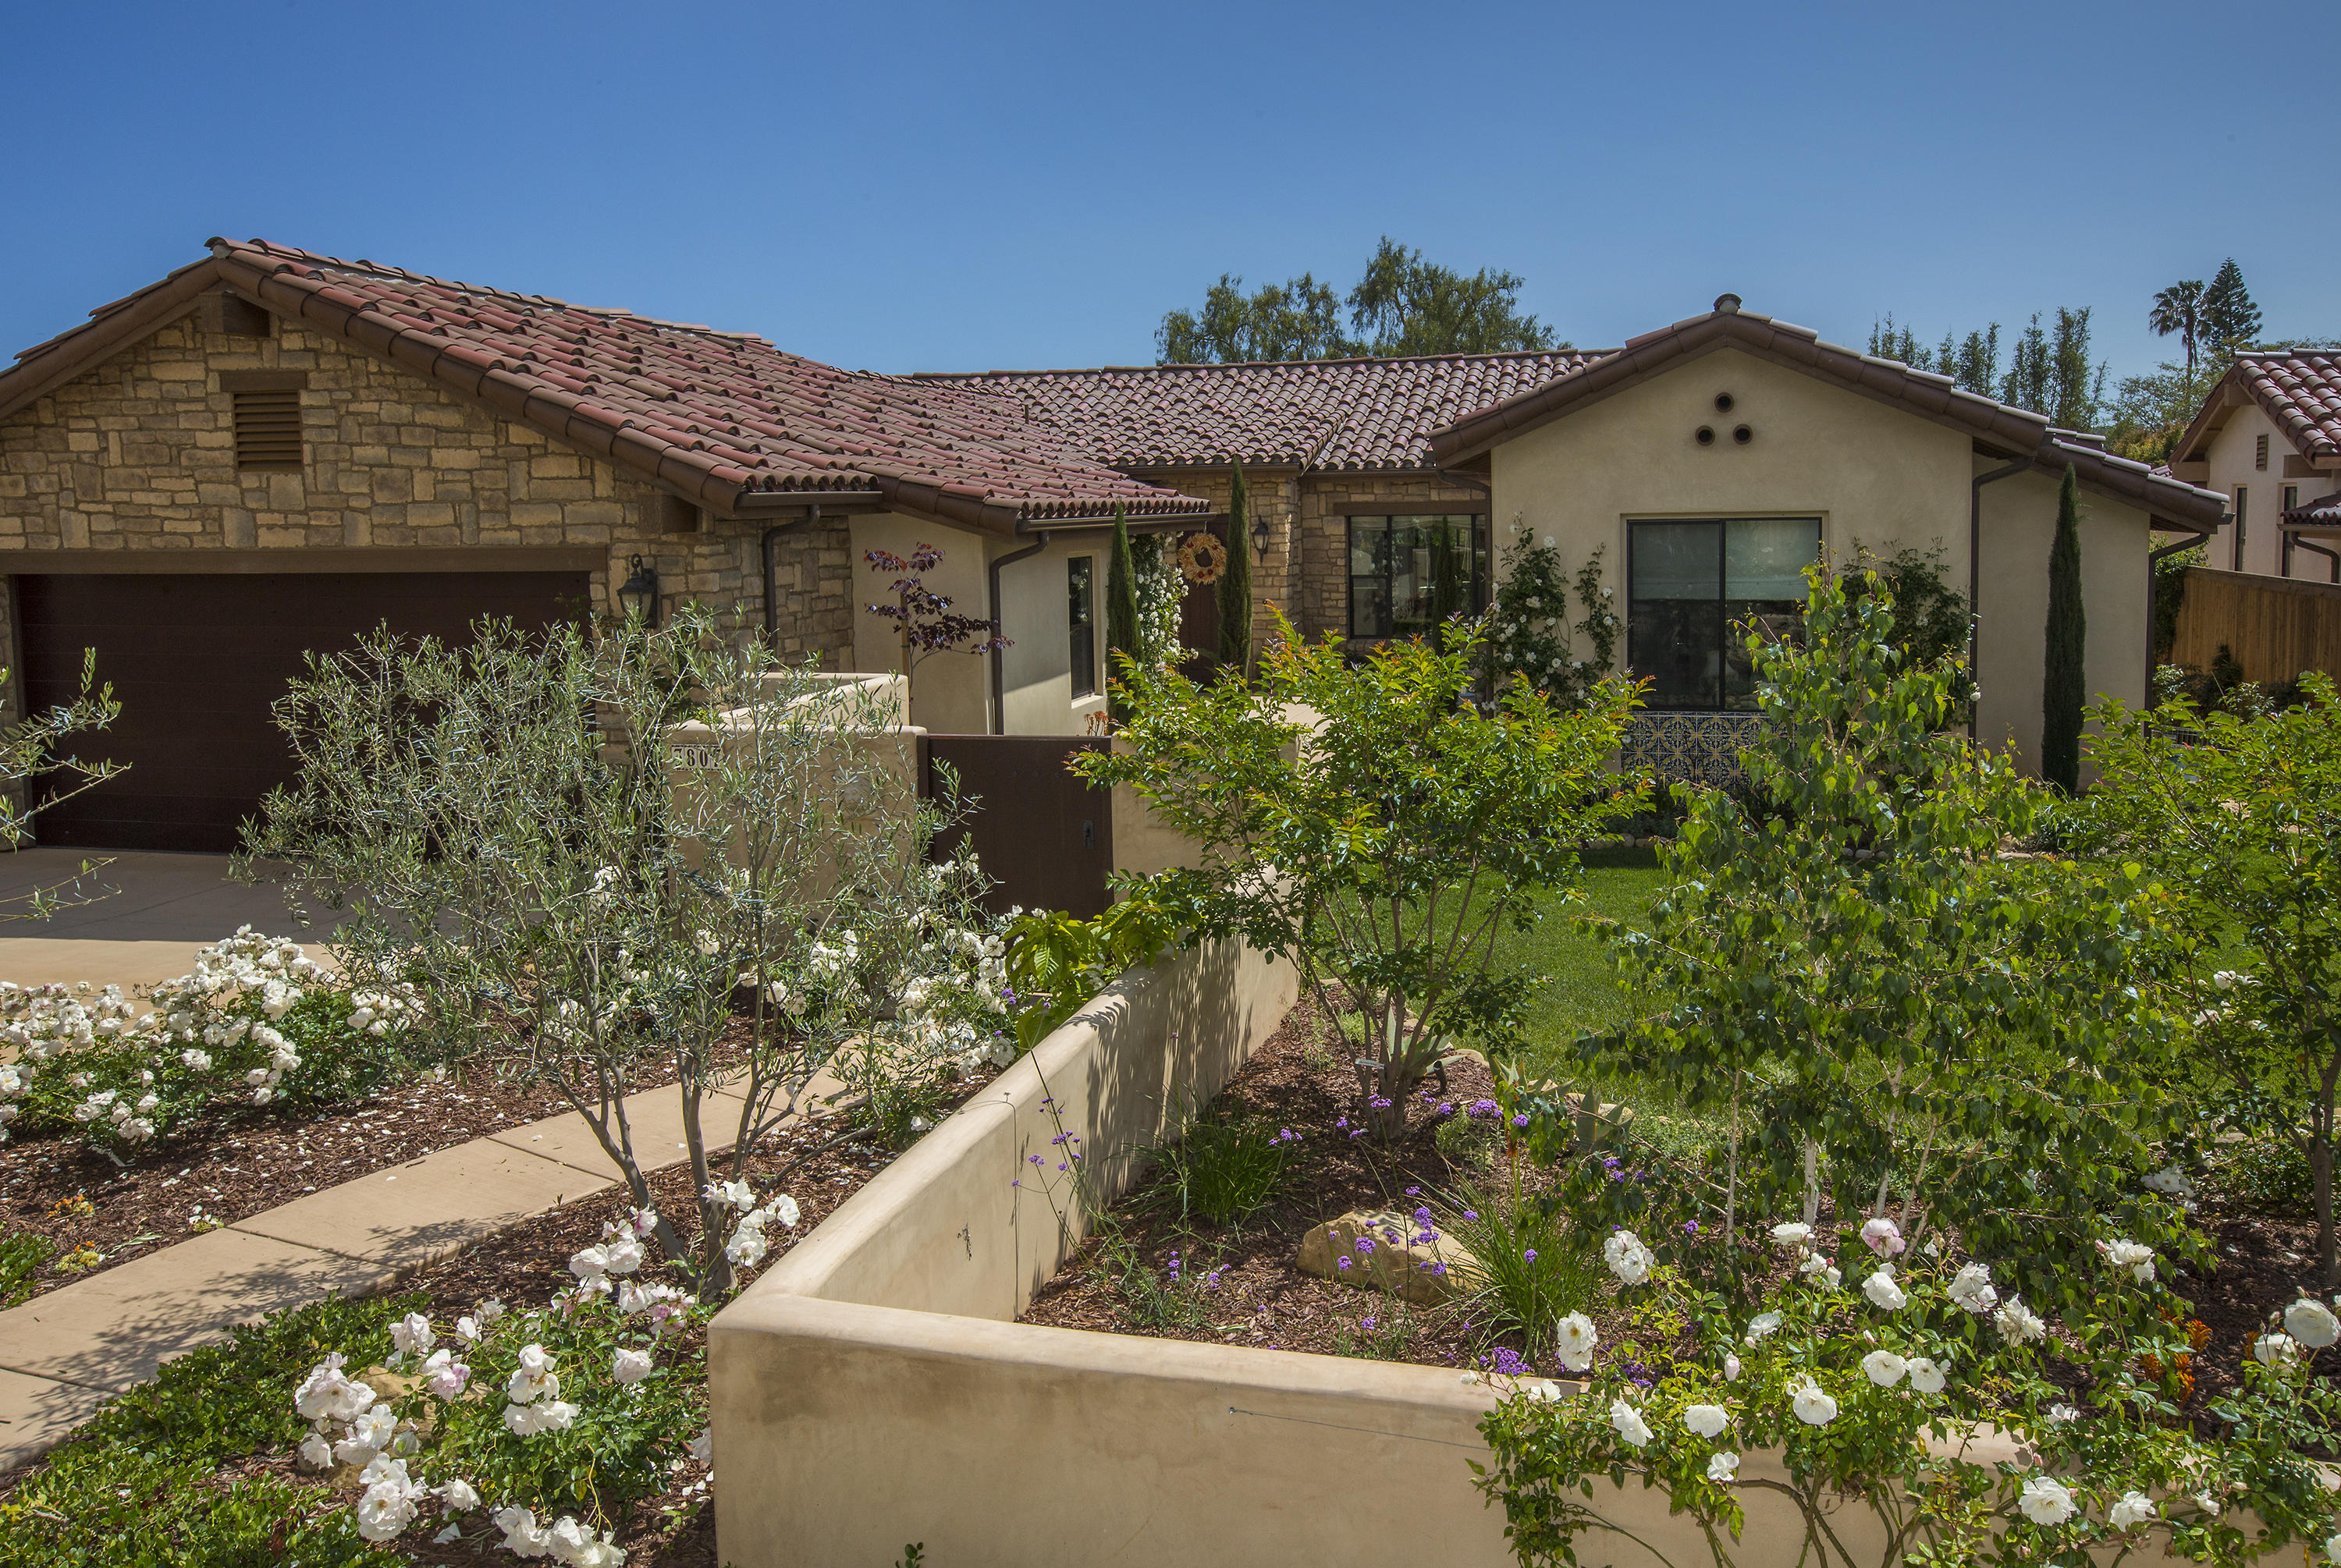 Property photo for 3807 Whiterose Ln Santa Barbara, California 93110 - 18-2041